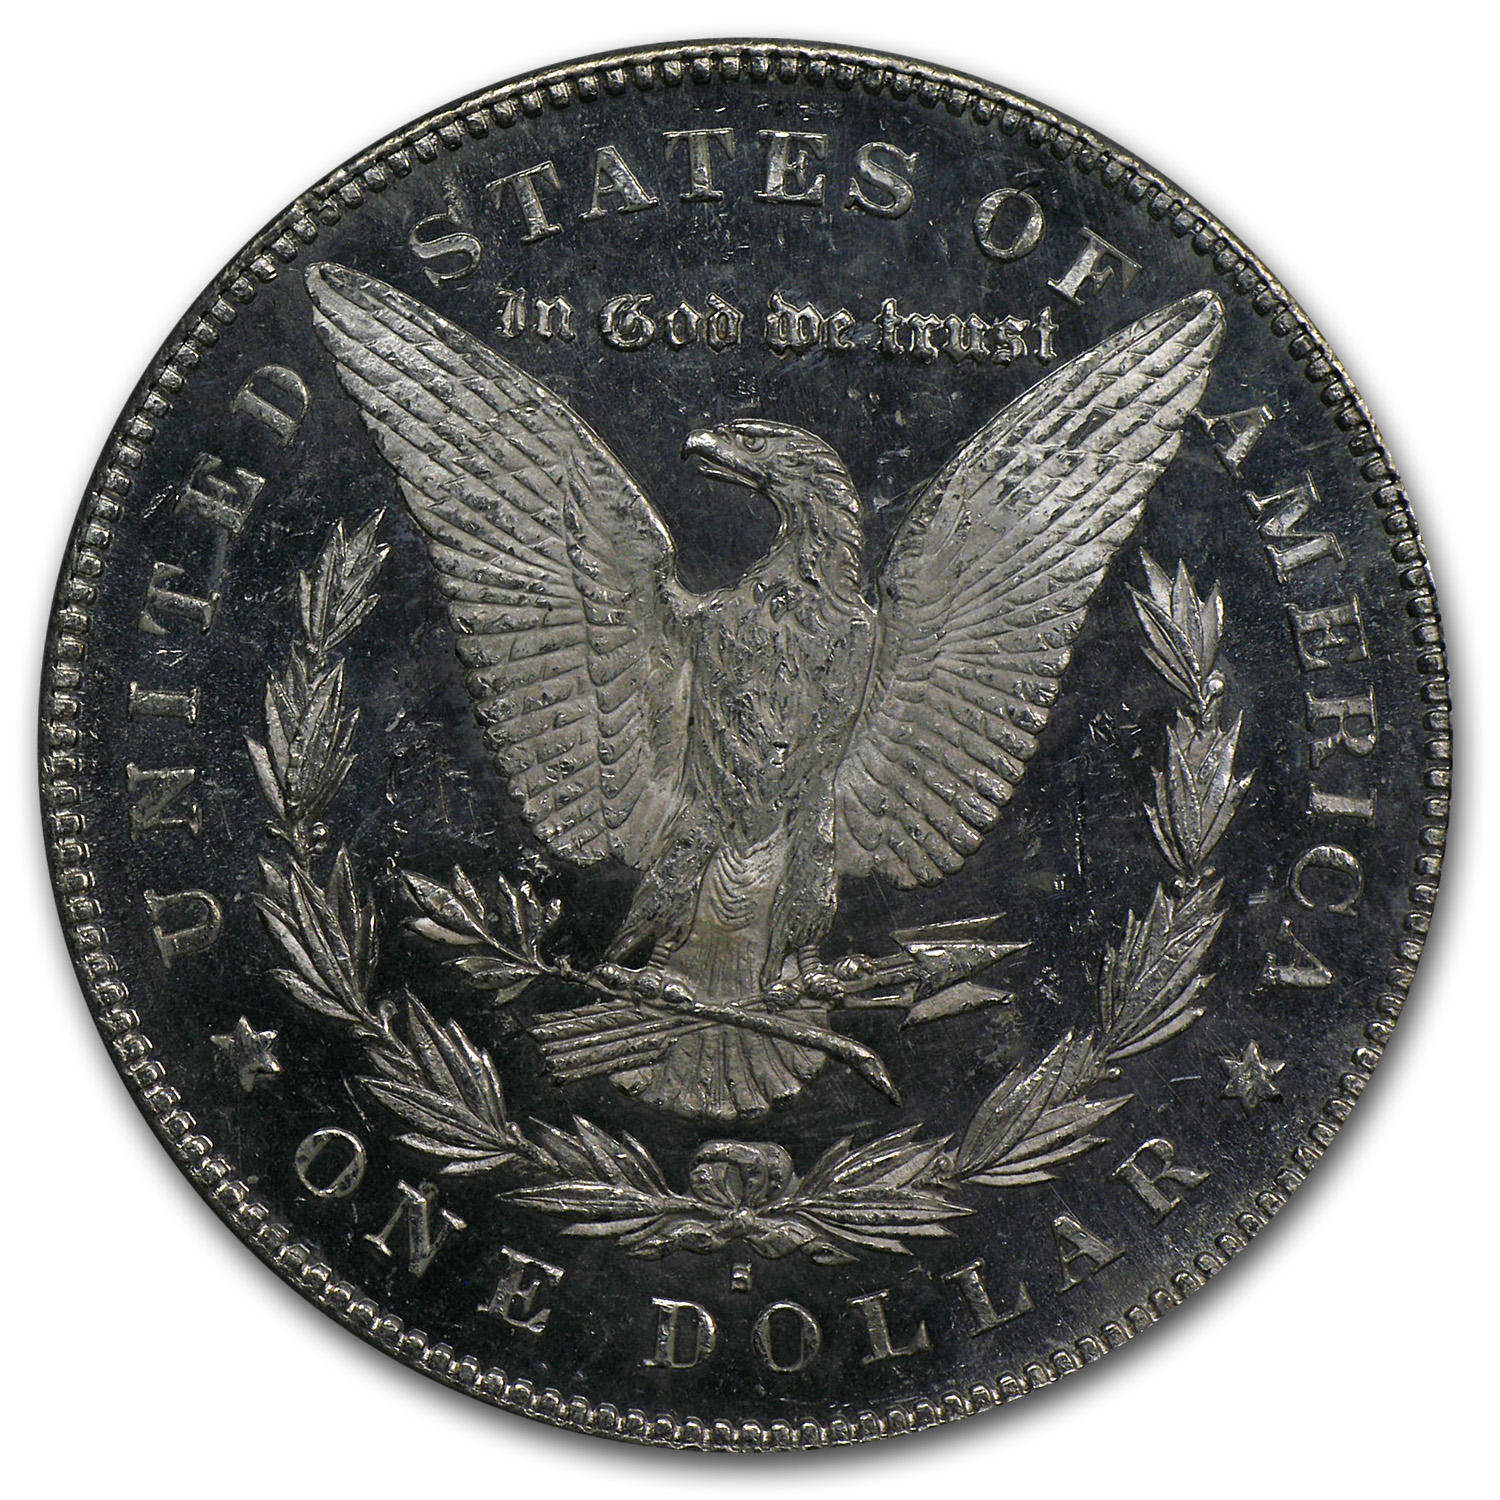 1878-S Morgan Dollar - MS-64 DMPL Deep Mirror Proof Like PCGS CAC